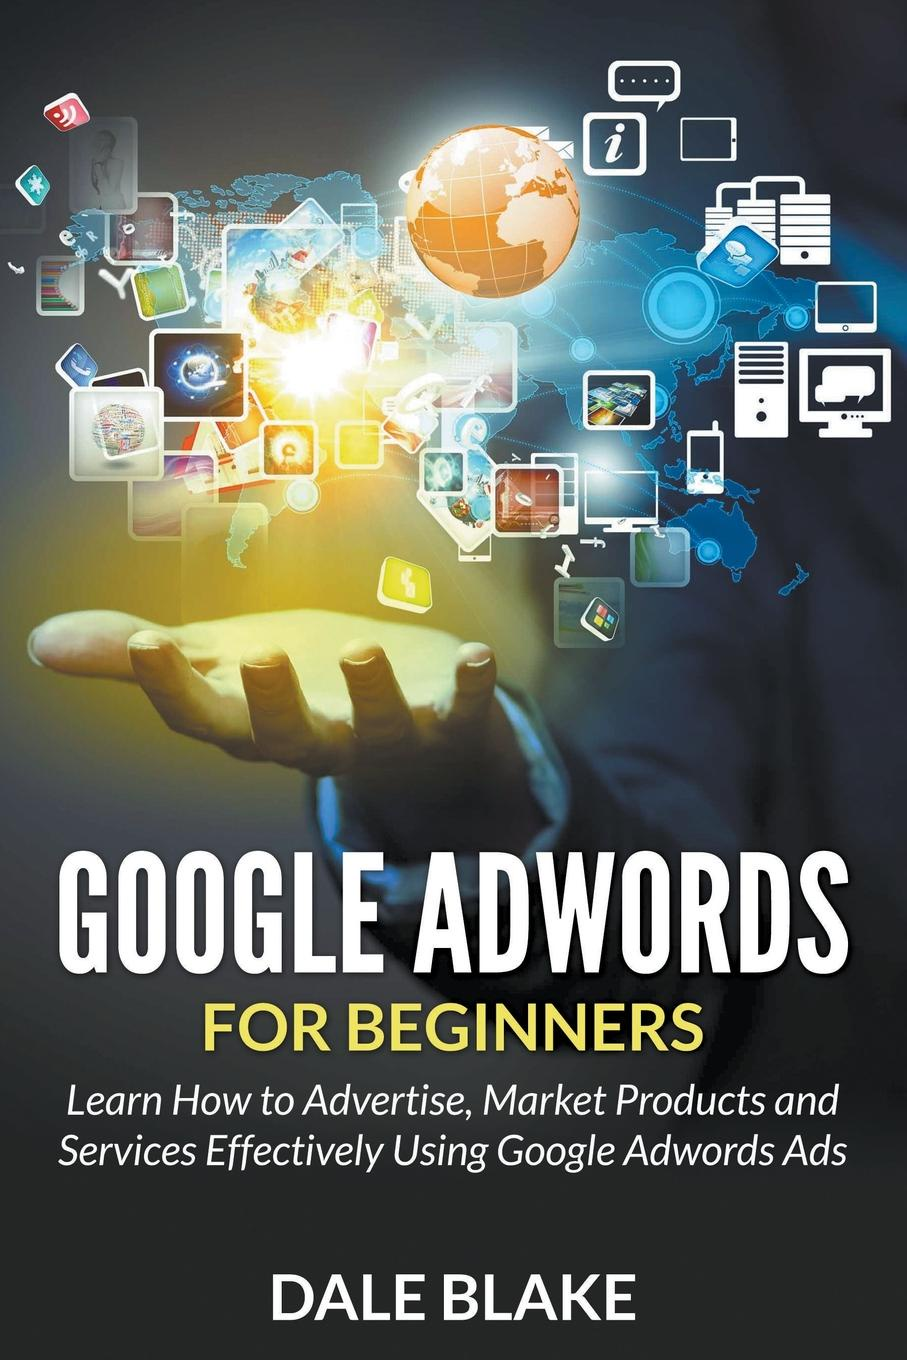 Google Adwords For Beginners. Learn How to Advertise, Market Products and Services Effectively Using Google Adwords Ads